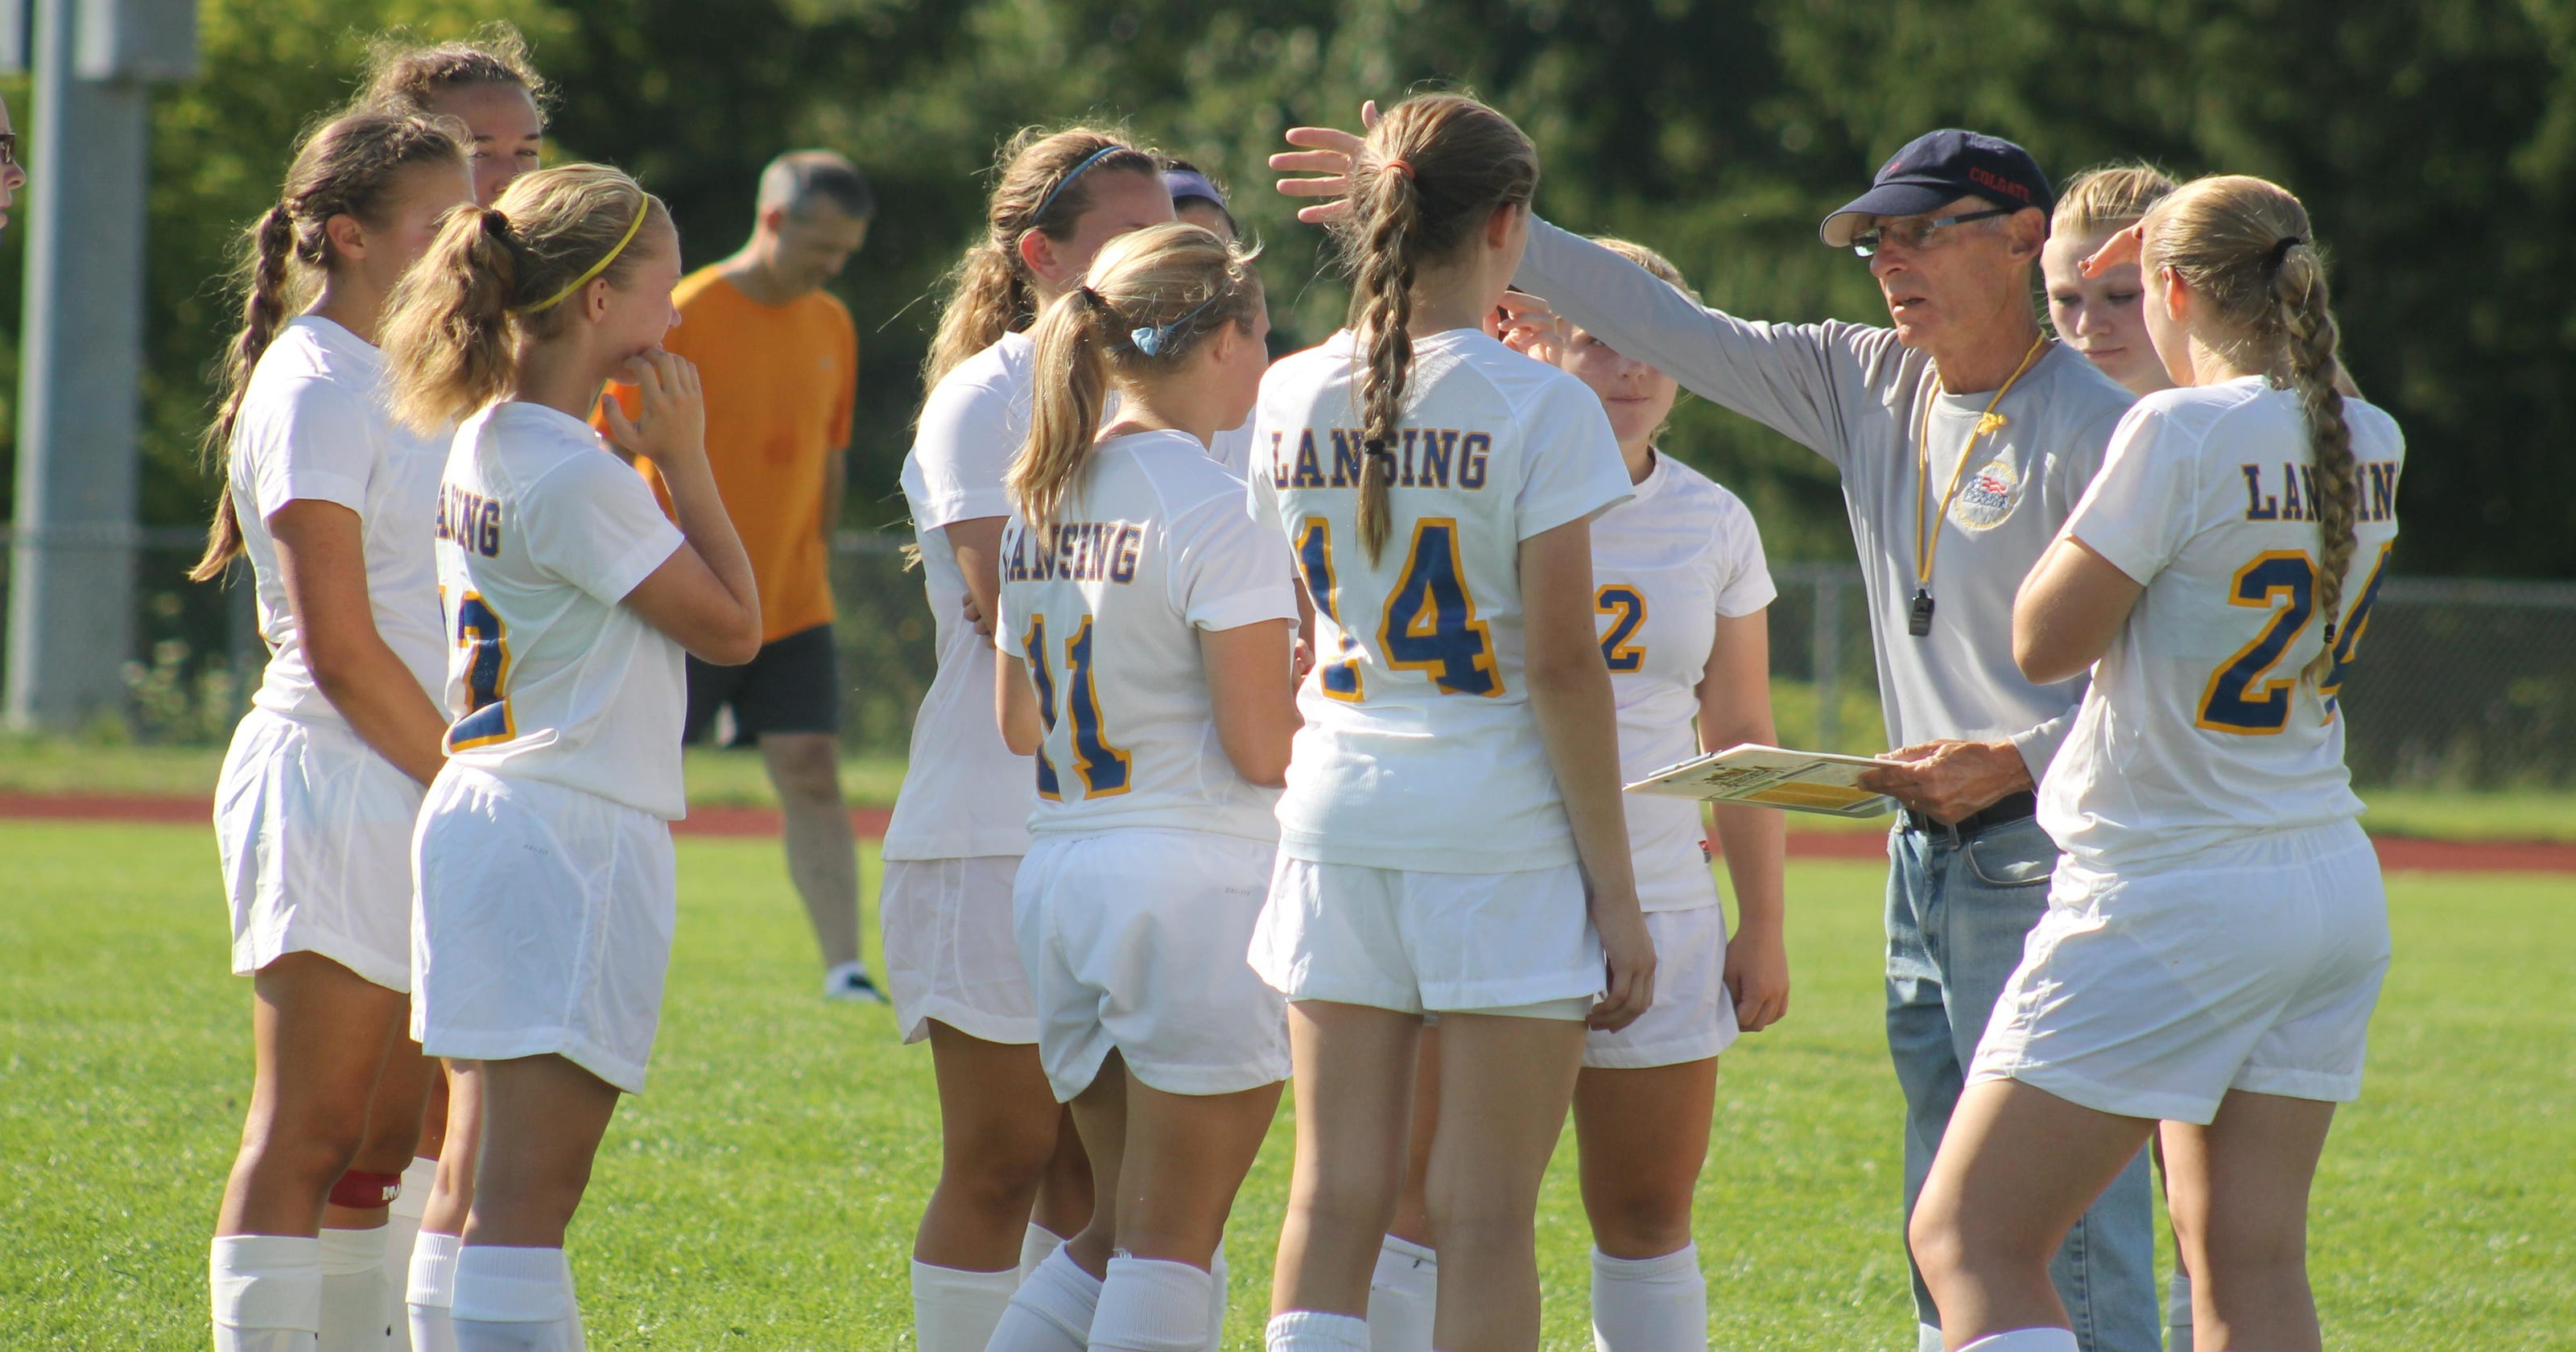 Lansing Town Talk: Coaches are in it for their players